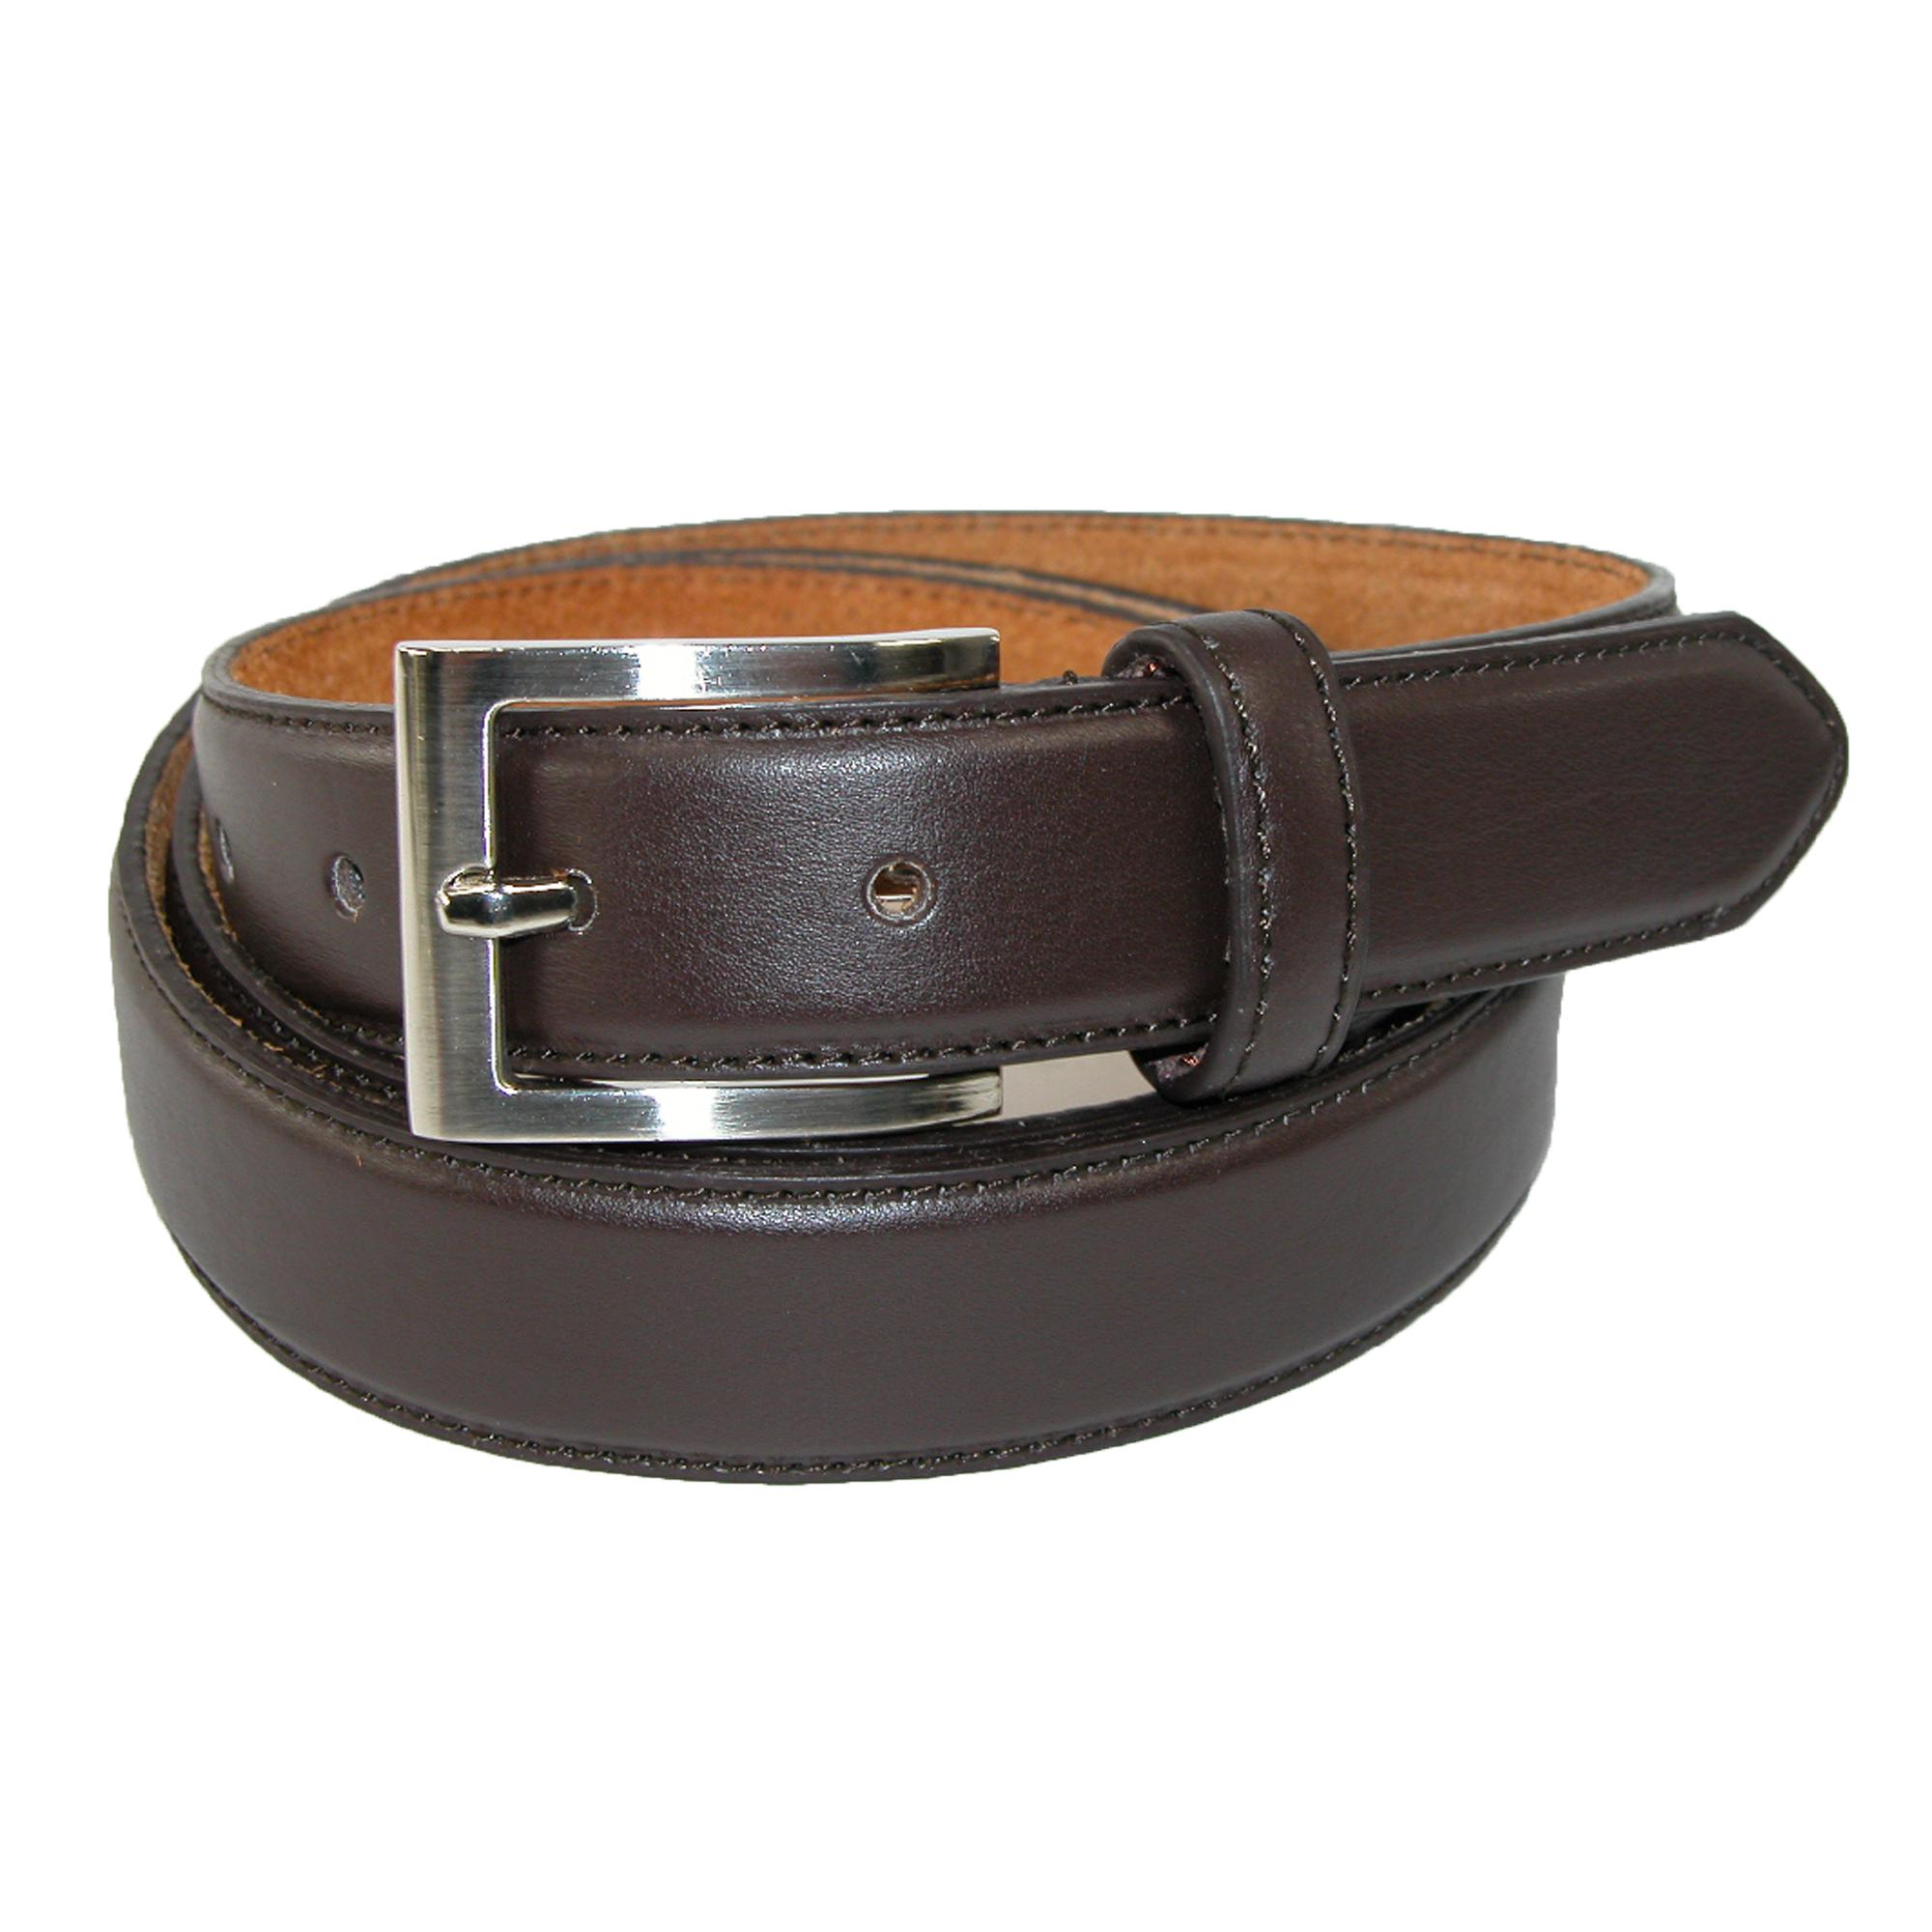 new ctm s big leather basic dress belt with